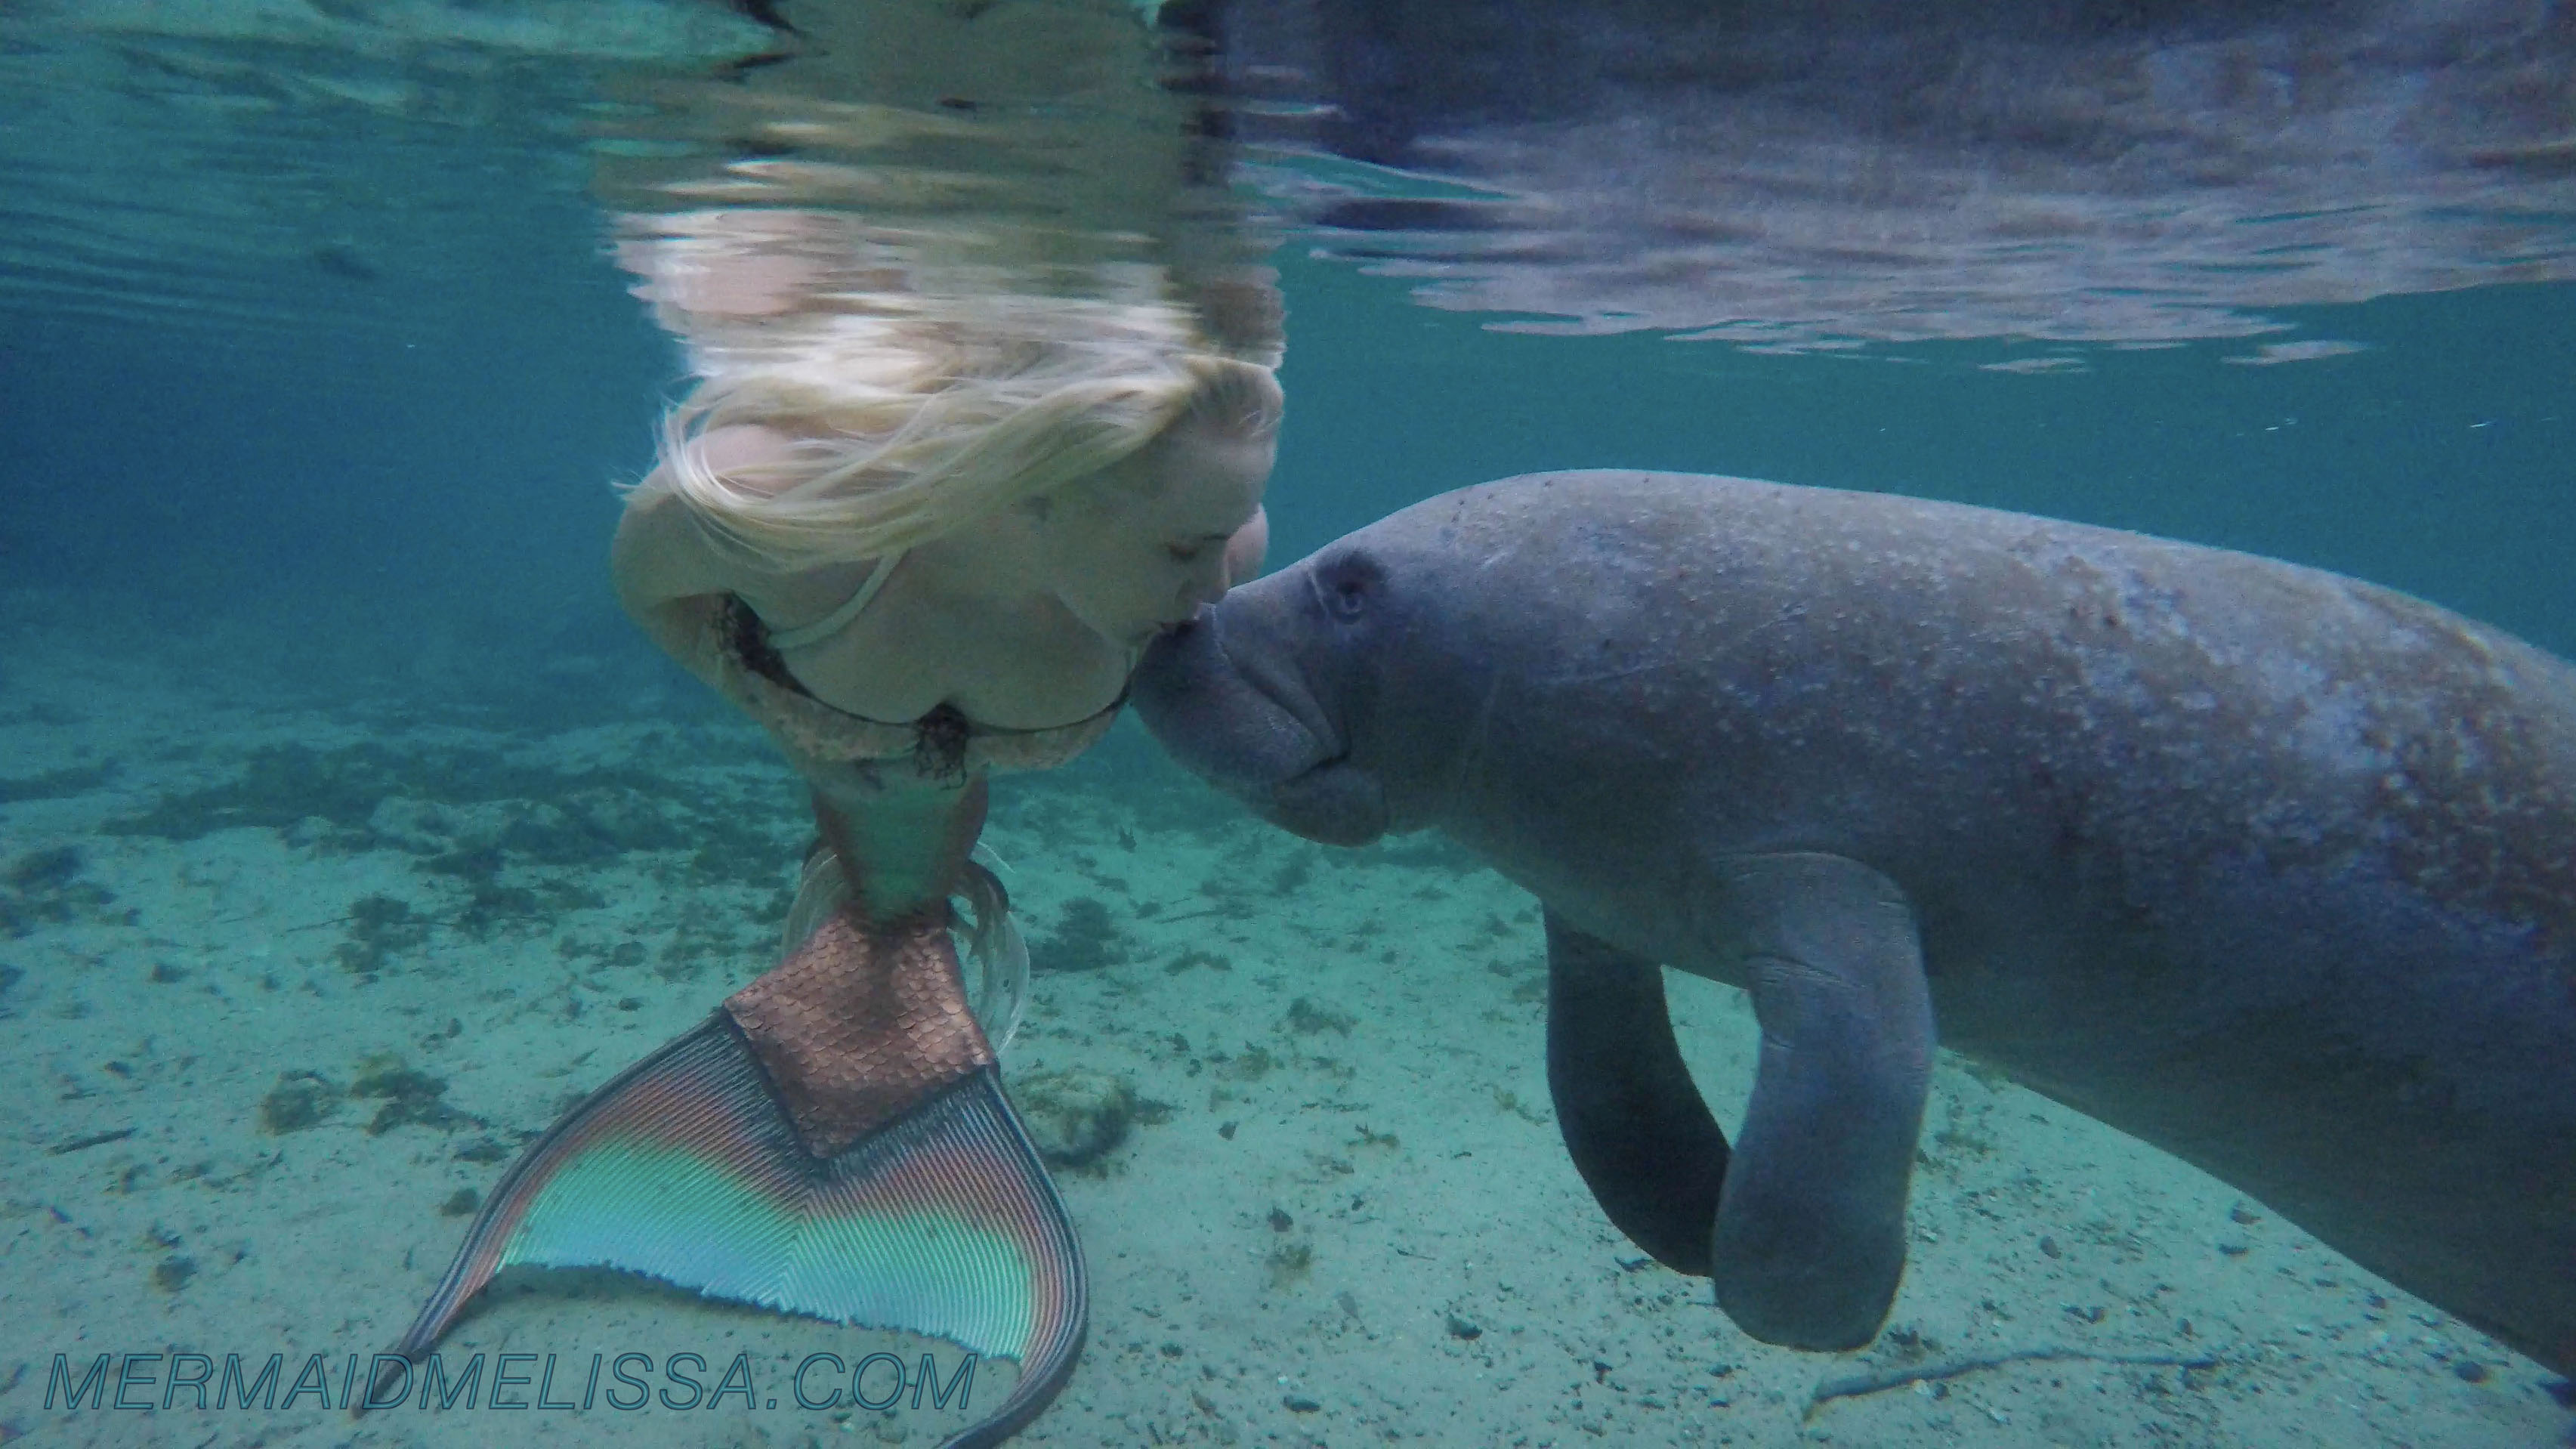 mermaid-manatee-website-small.jpg